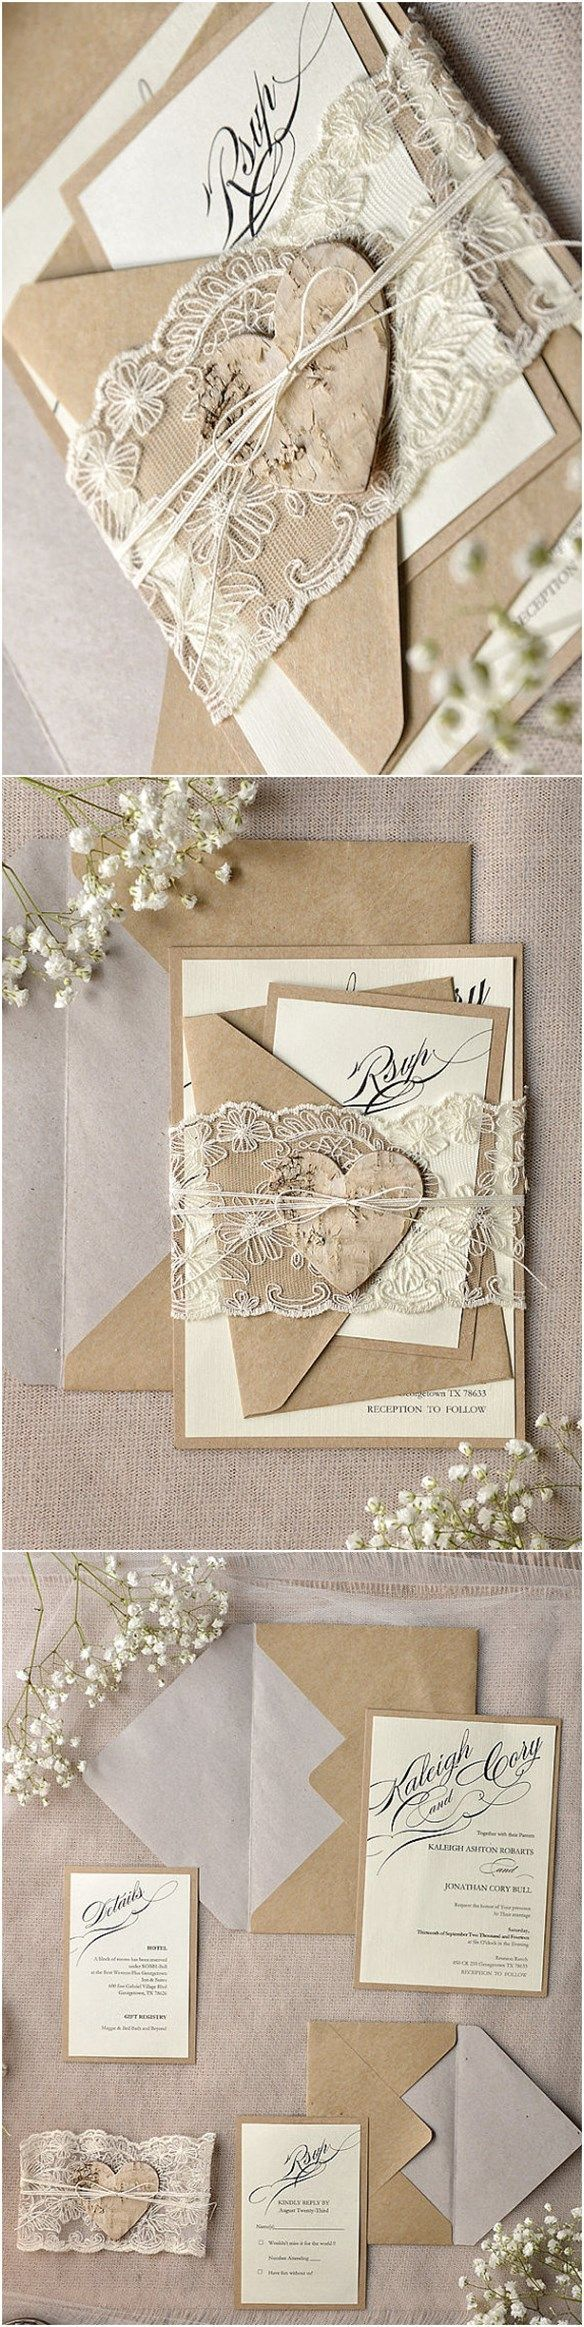 119 best Rustic/Western Wedding Ideas images on Pinterest | Weddings ...